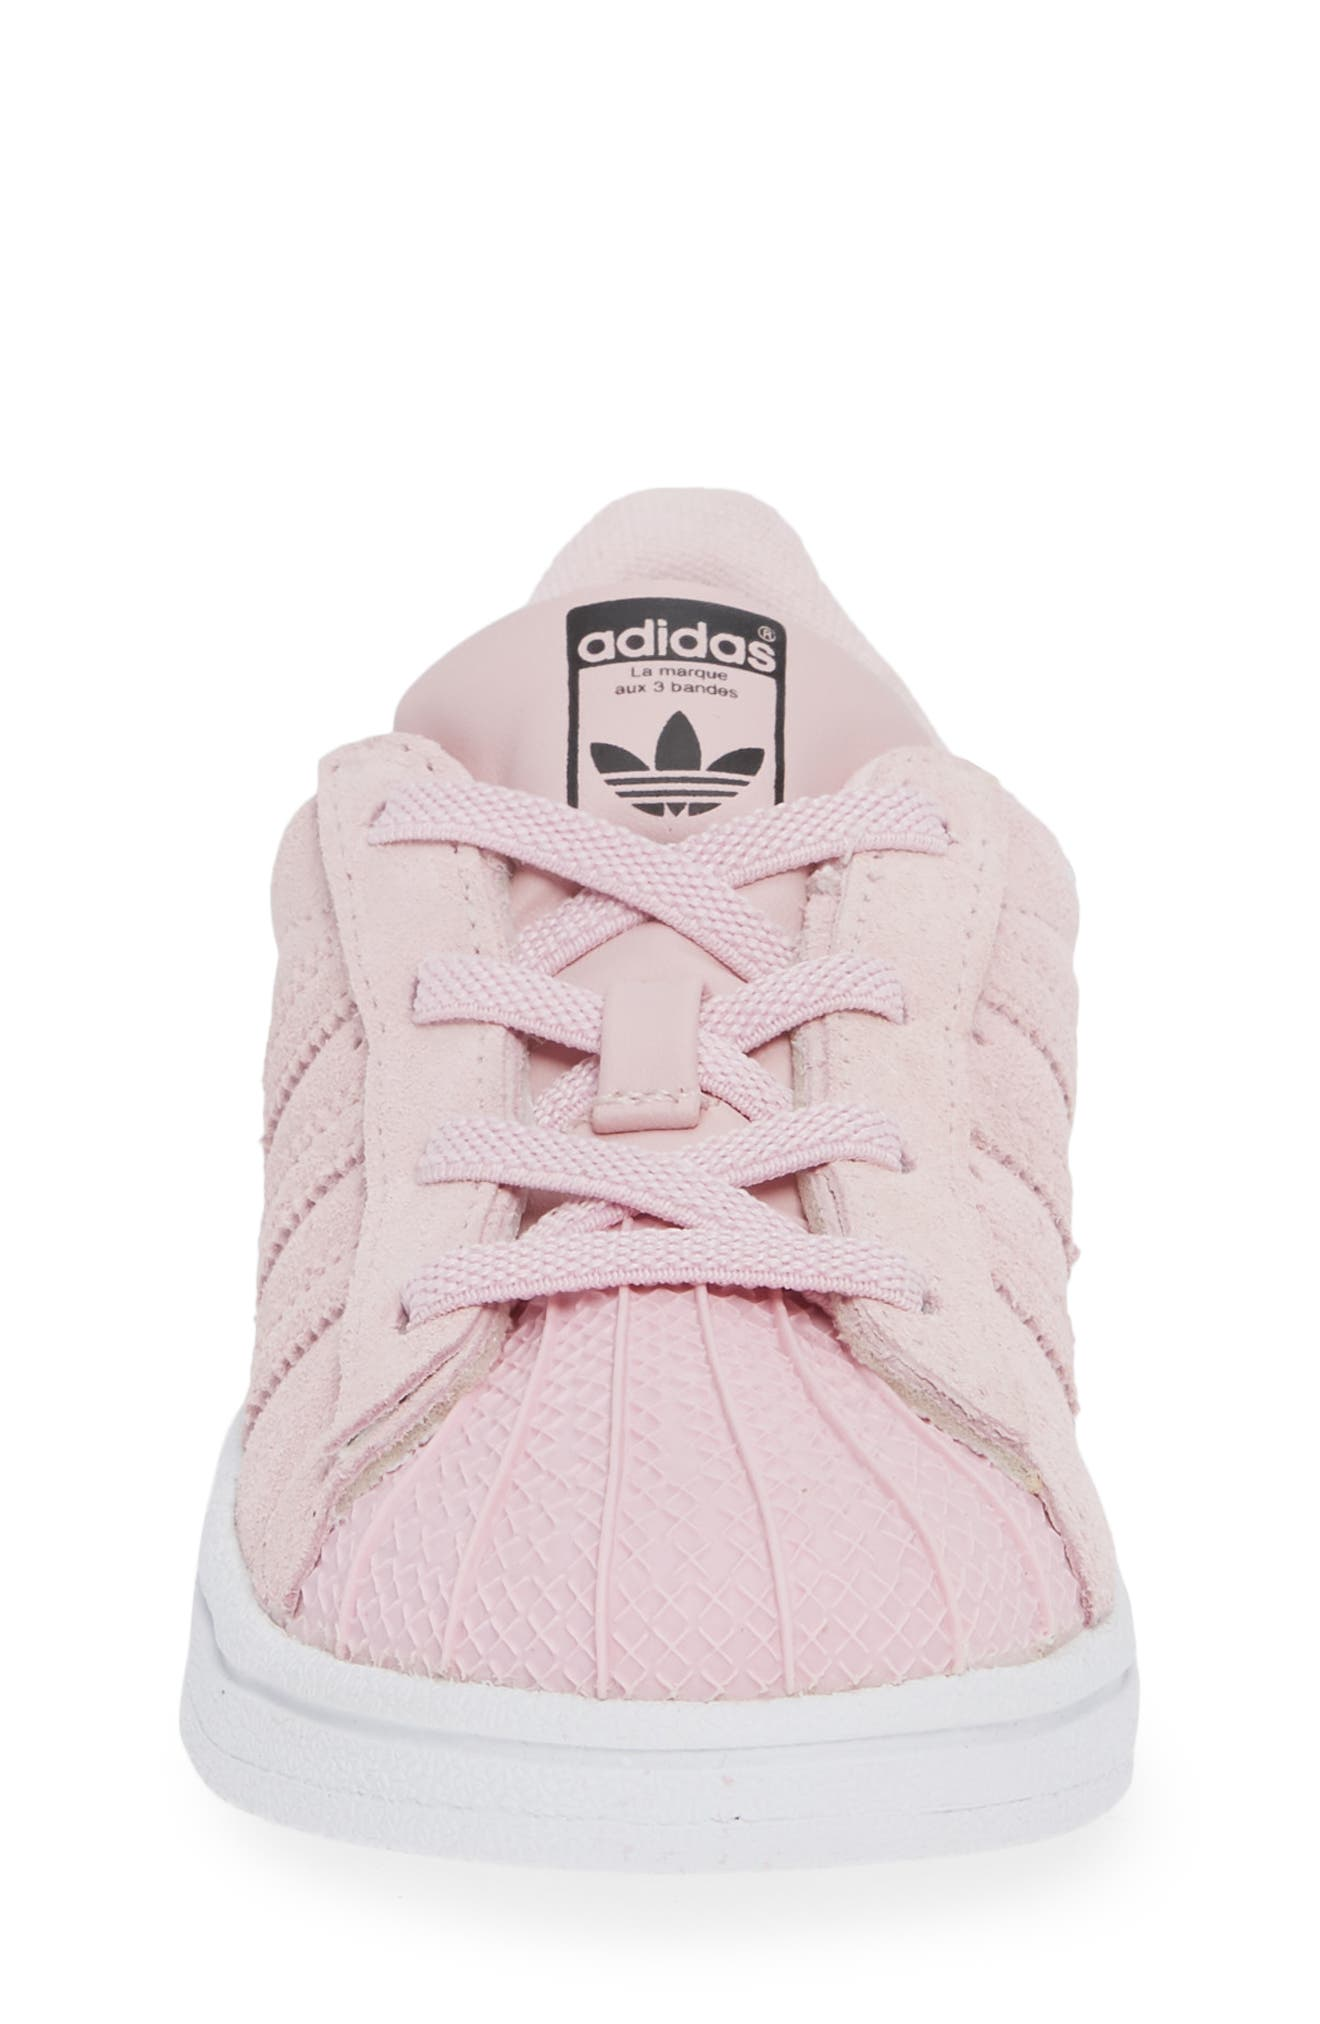 Superstar Low Top Sneaker,                             Alternate thumbnail 4, color,                             CLEAR PINK/ WHITE